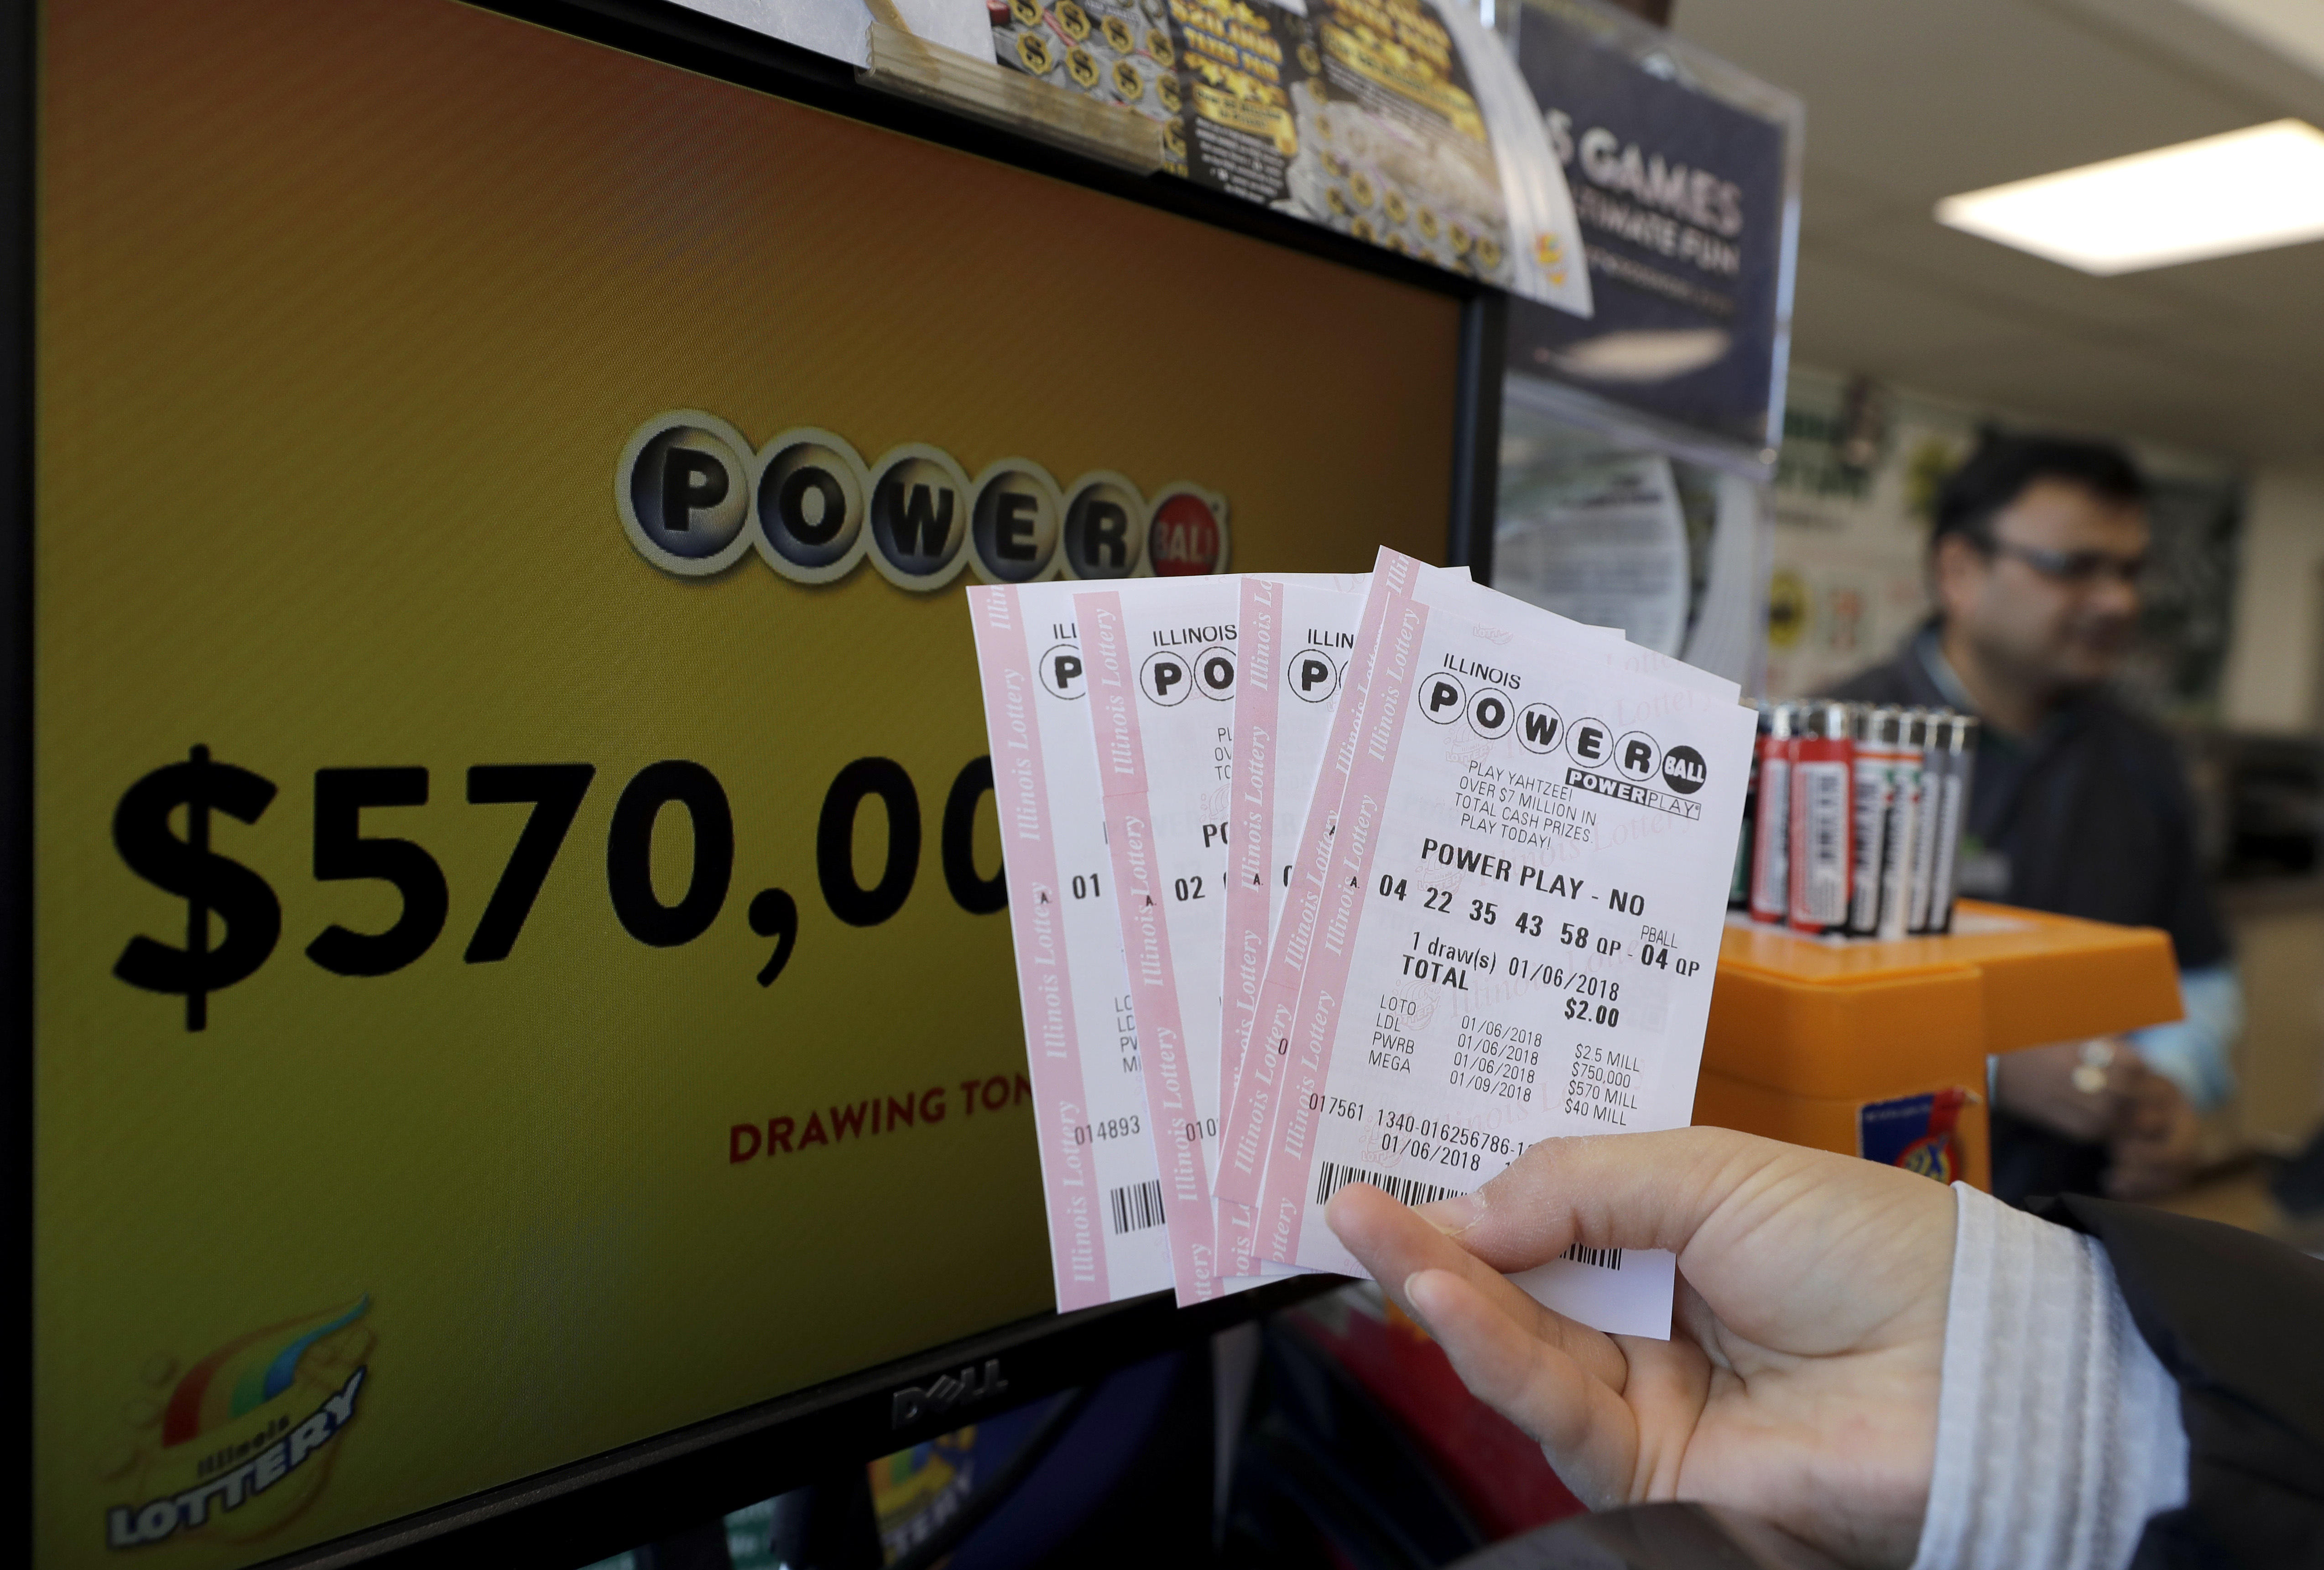 Powerball Winning Numbers In 570 Million Jackpot Sold In New